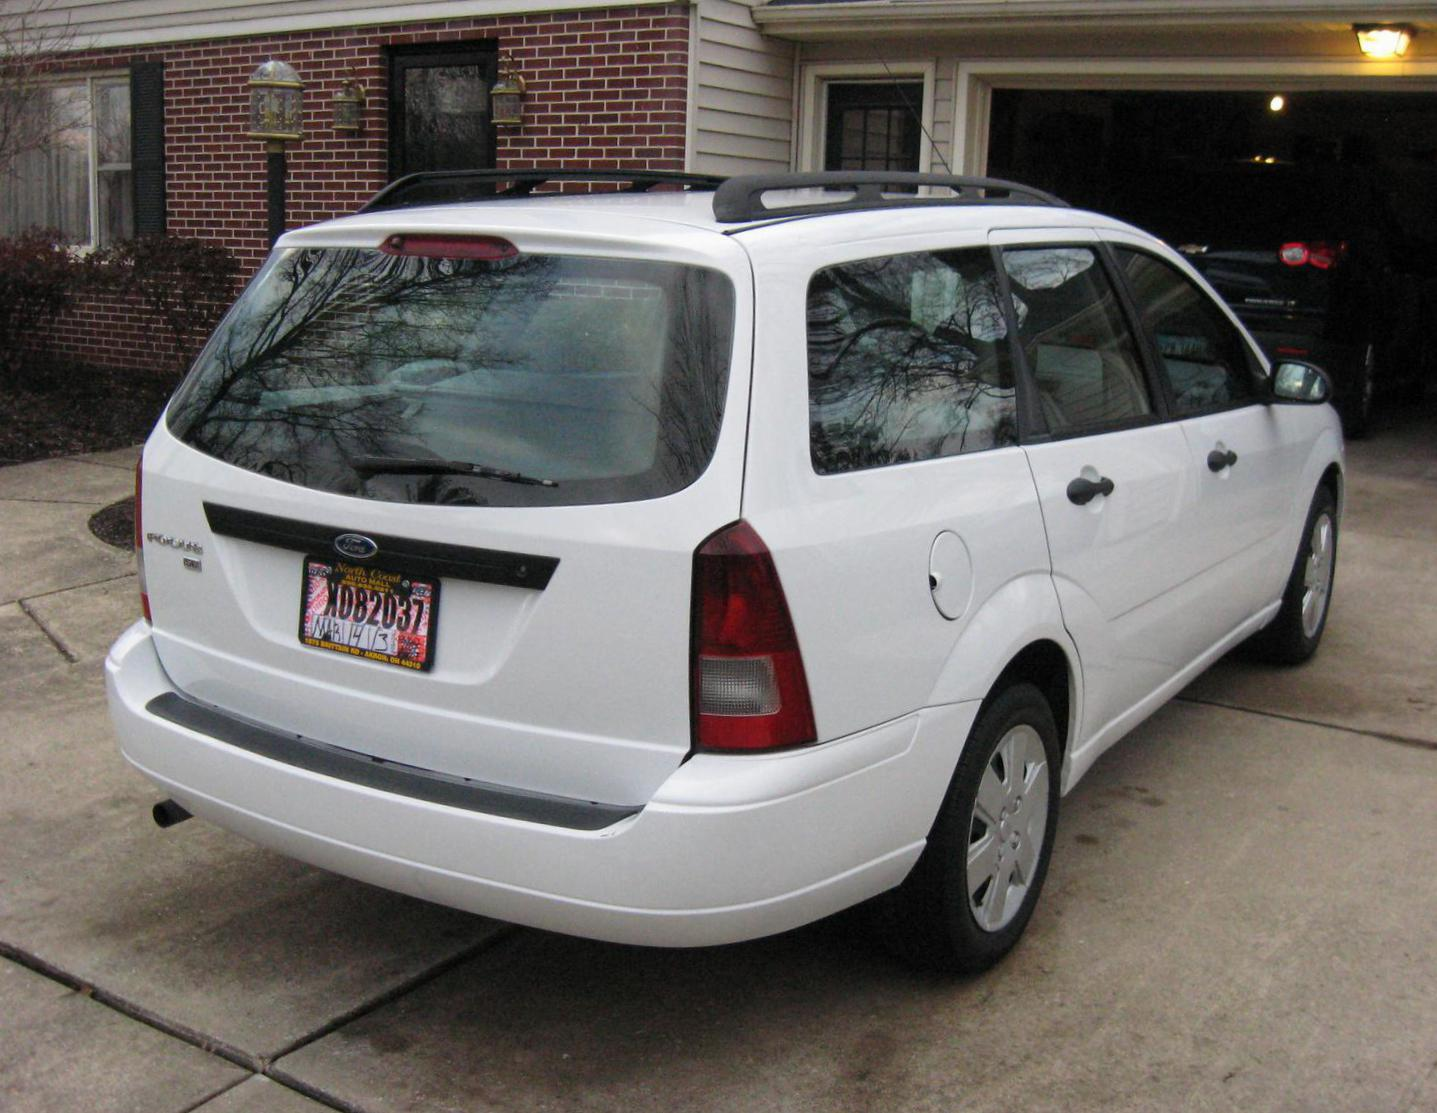 ford focus wagon photos and specs  photo  ford focus wagon for sale and 20 perfect photos of